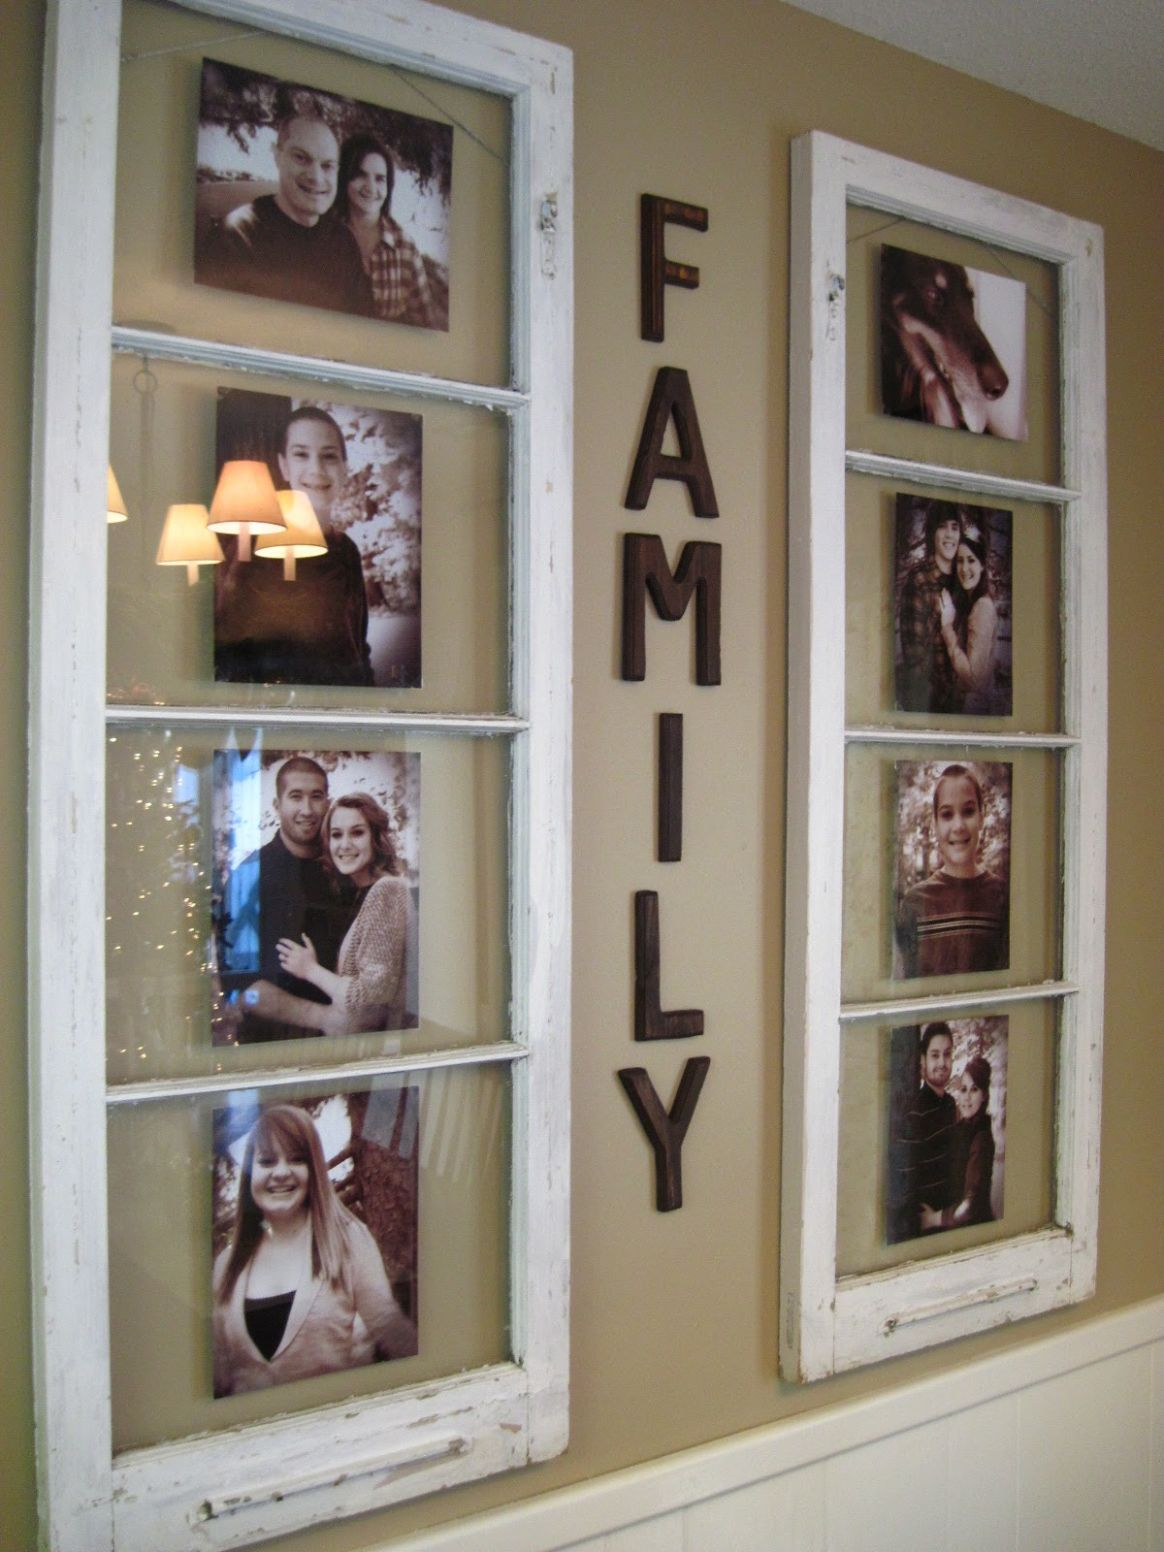 9 Best Rustic Wall Decor Ideas and Designs for 9 - wall decor ideas picture frame